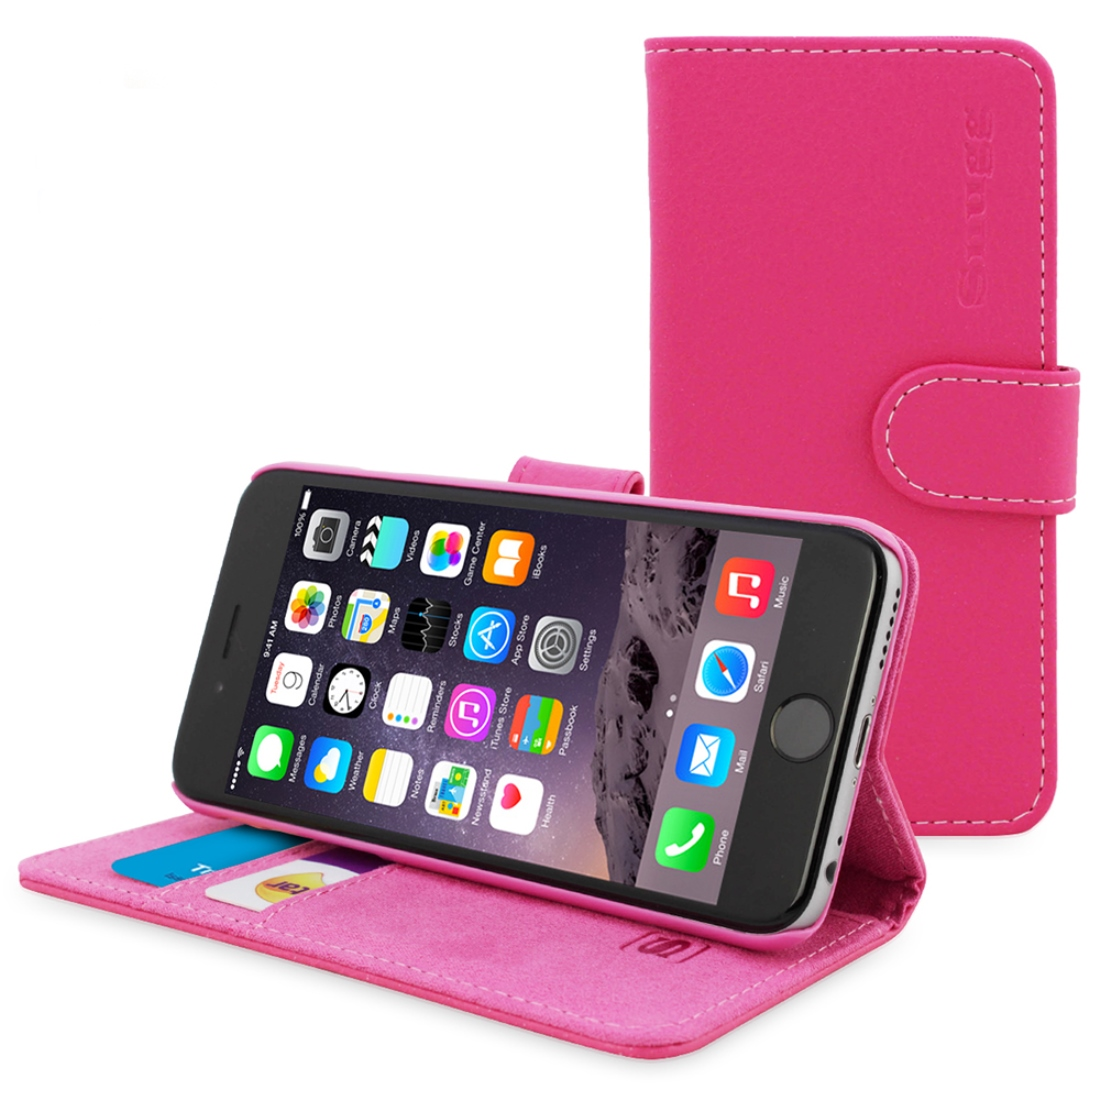 Snugg Hot Pink Leather iPhone 6 Flip Case - Wallet Case w/ Card Slots & Stand